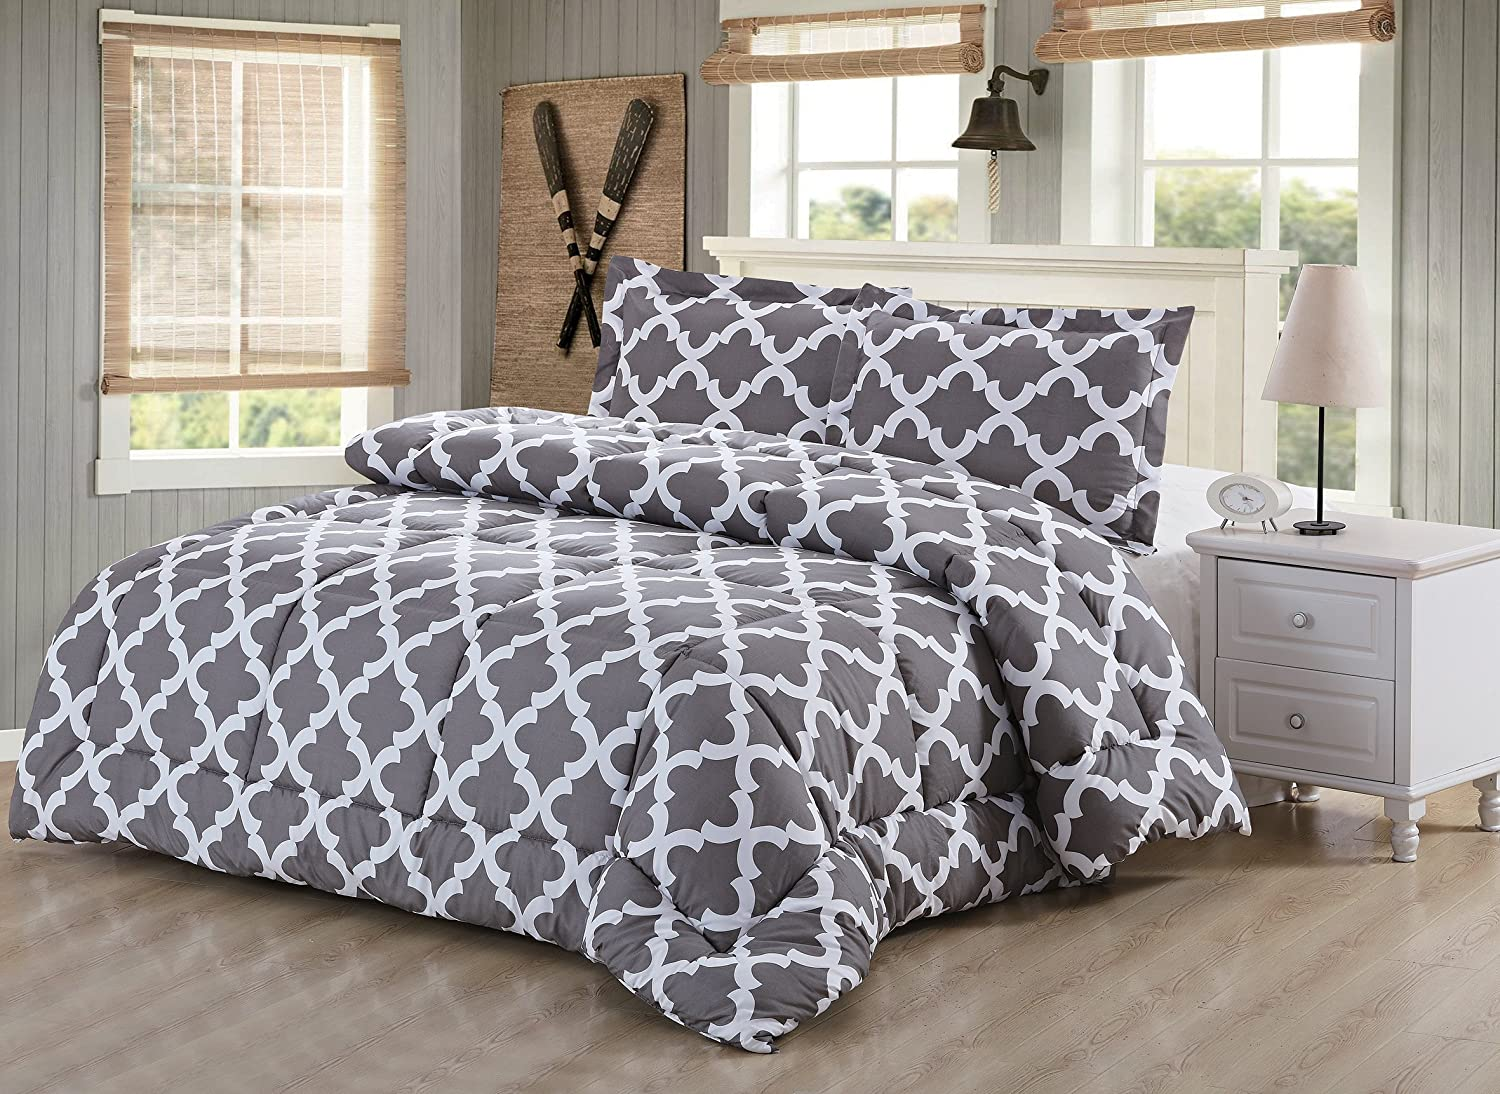 bedding charming with as piece set stripe perfect of size purpleand pillowcase queen istanbul comforter wells photo and large rc for modern grey plus lace yellow